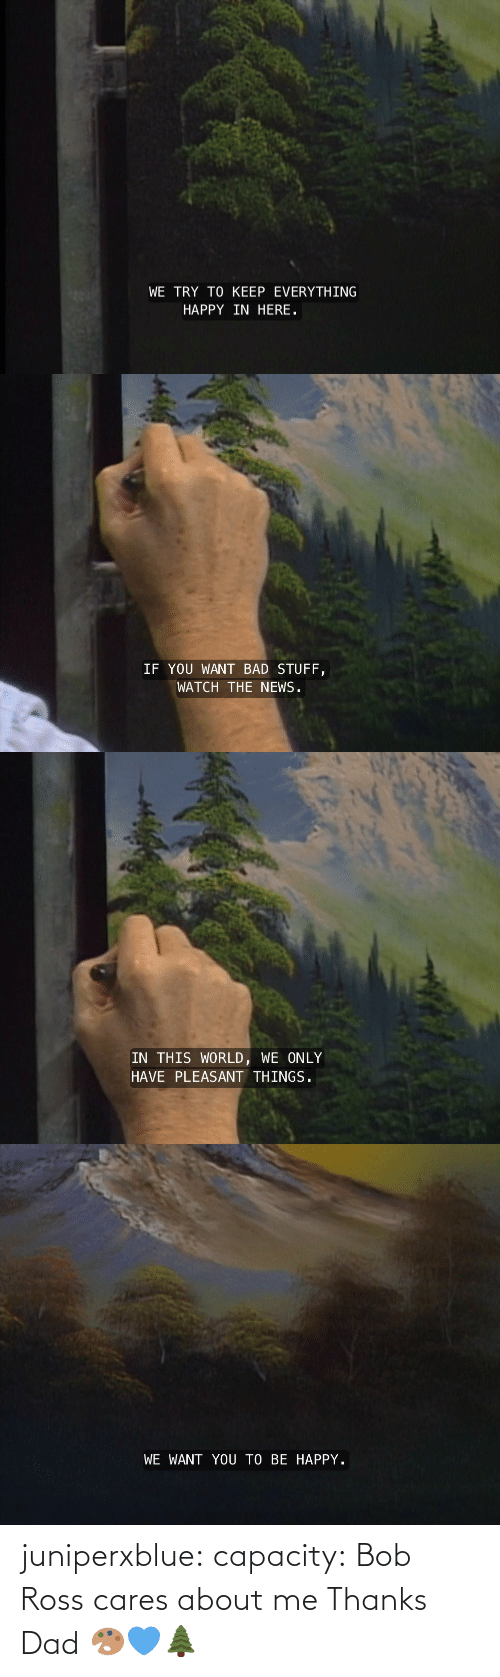 Cares: juniperxblue: capacity:  Bob Ross cares about me   Thanks Dad 🎨💙🌲